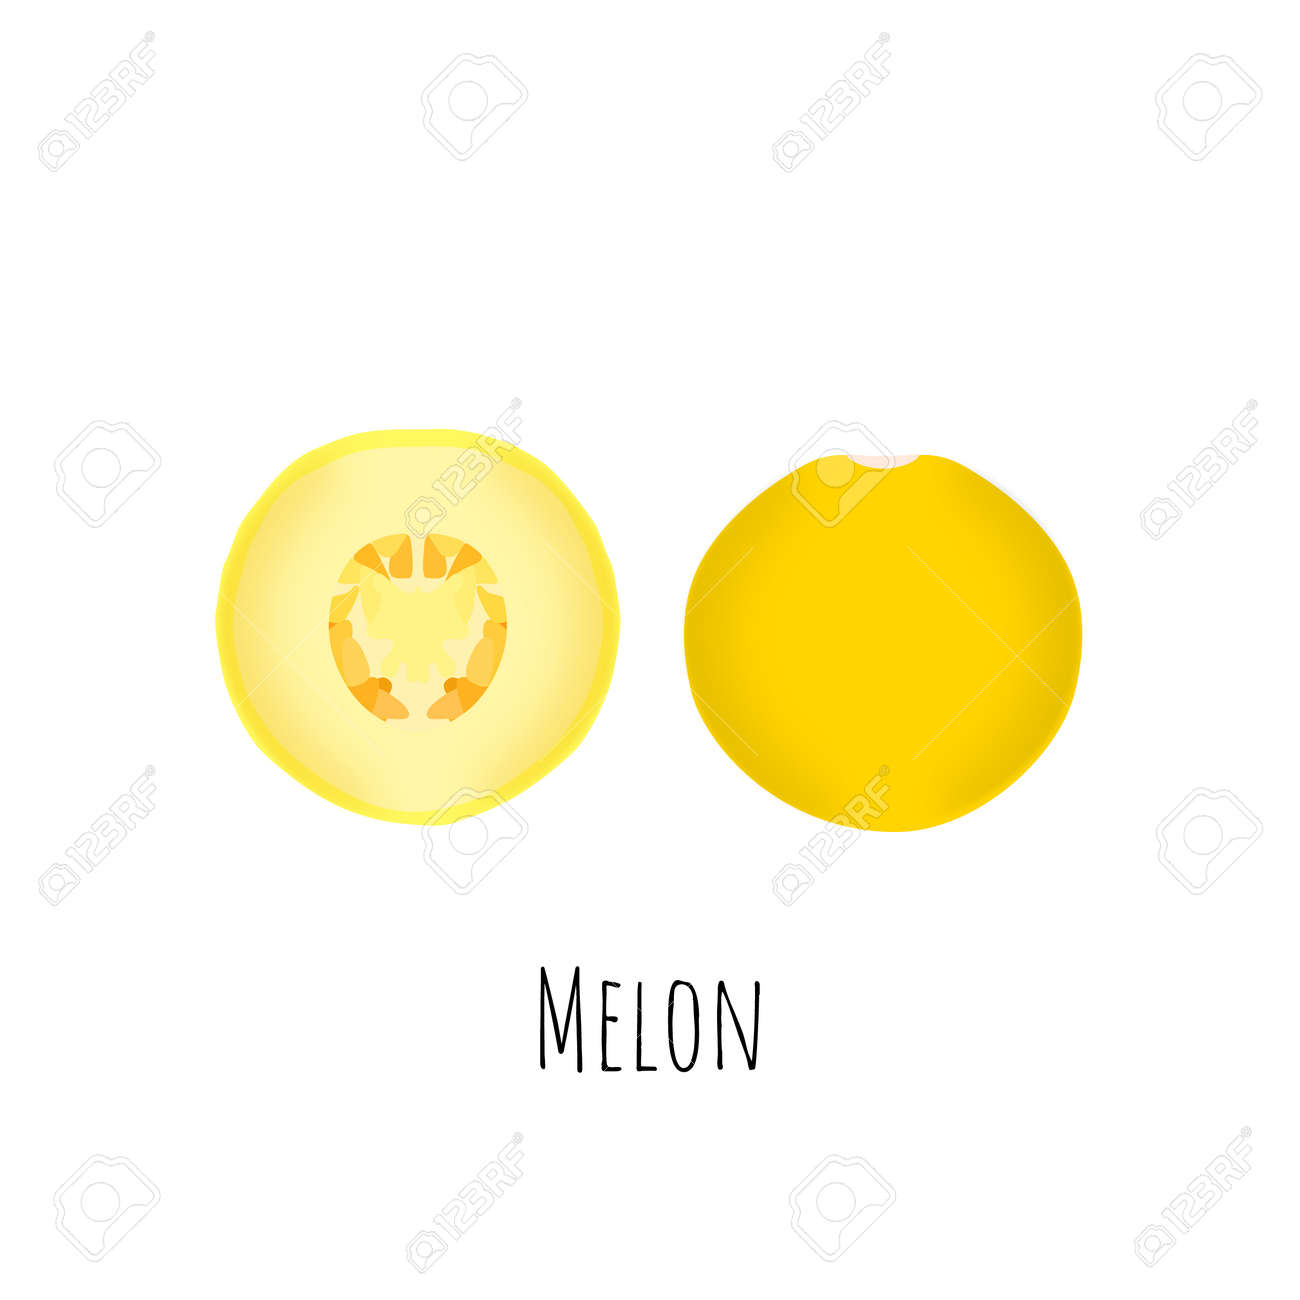 Whole and halved melon fruit isolated on white background. Vibrant yellow melon with seeds. Flat vector with shadows. - 168336297